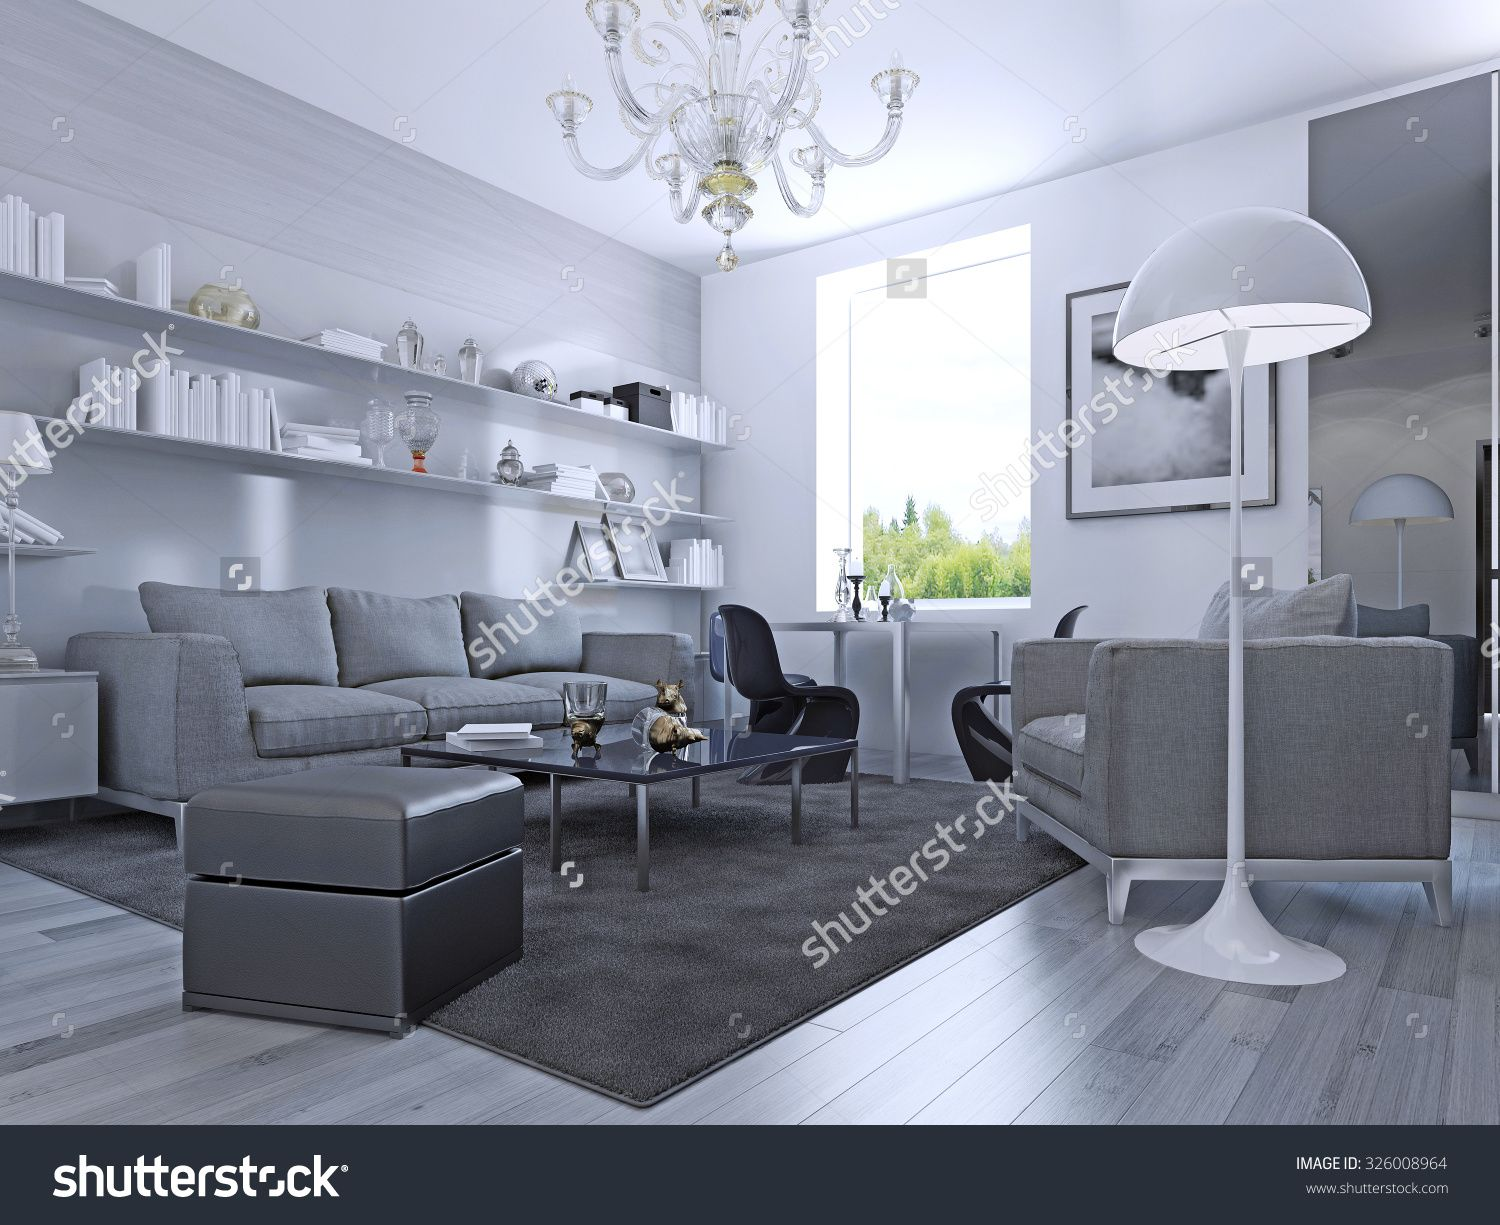 Living Room In Modern Style With White Walls And Awesome Pale Grey Laminate Flooring